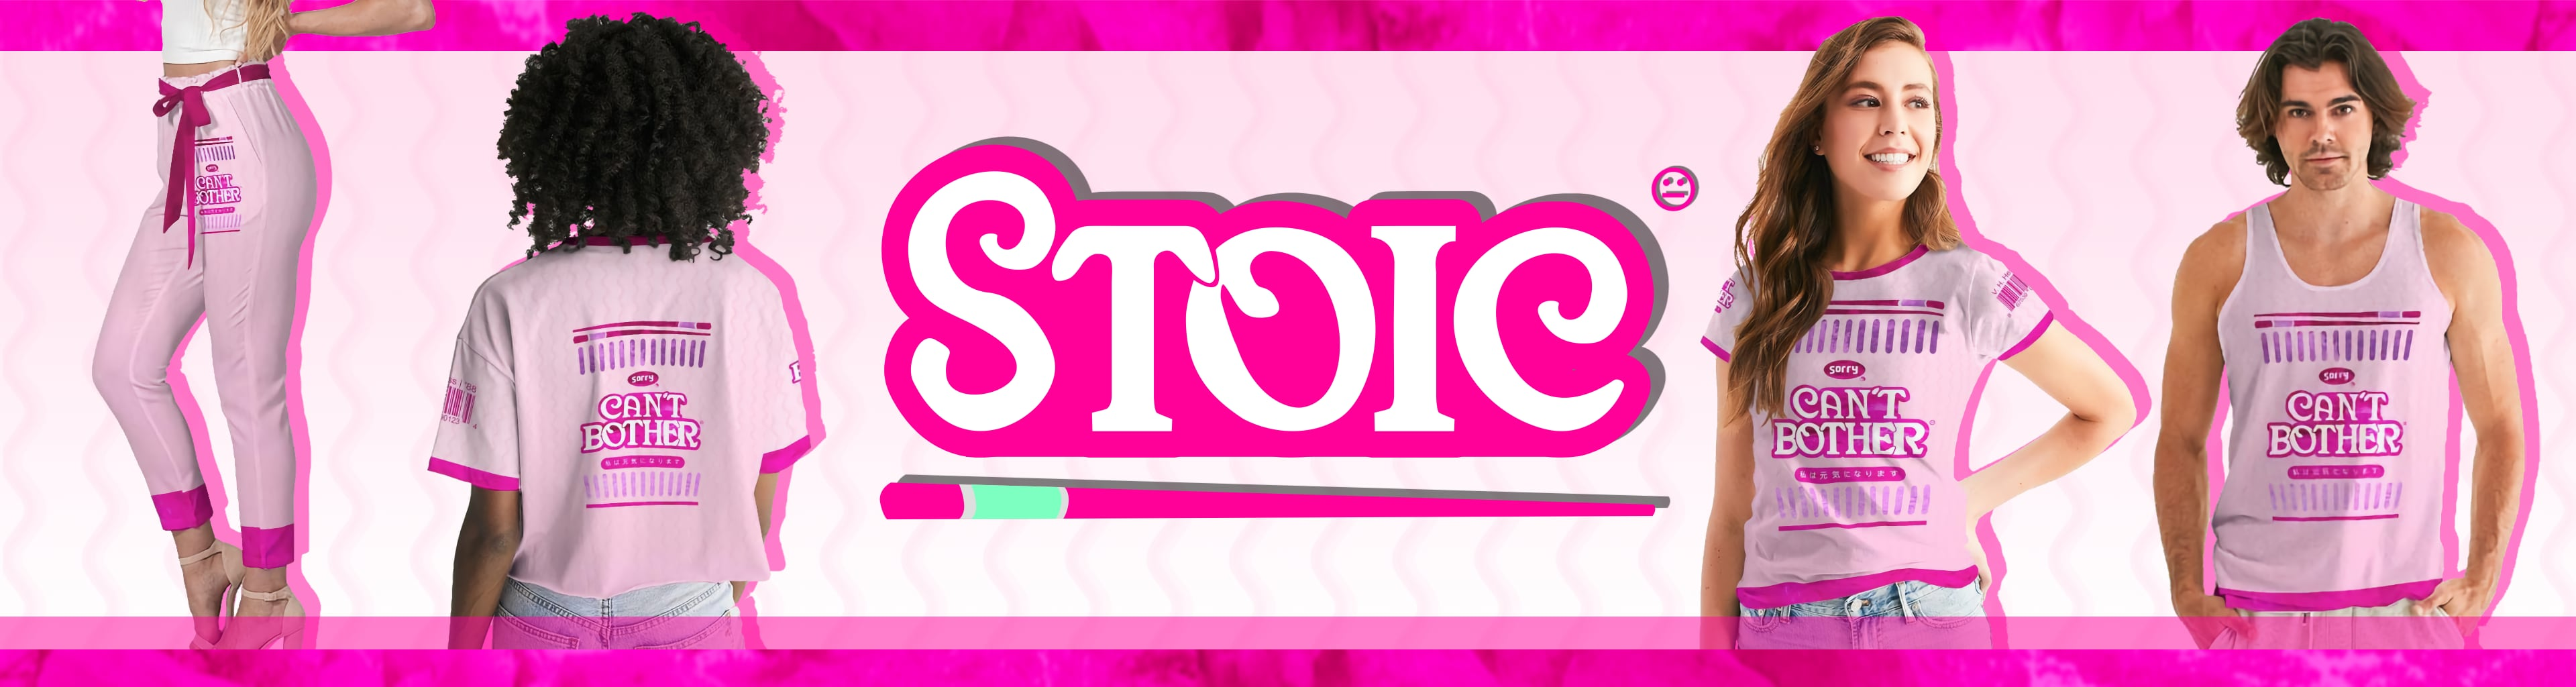 Stoic Collection Banner